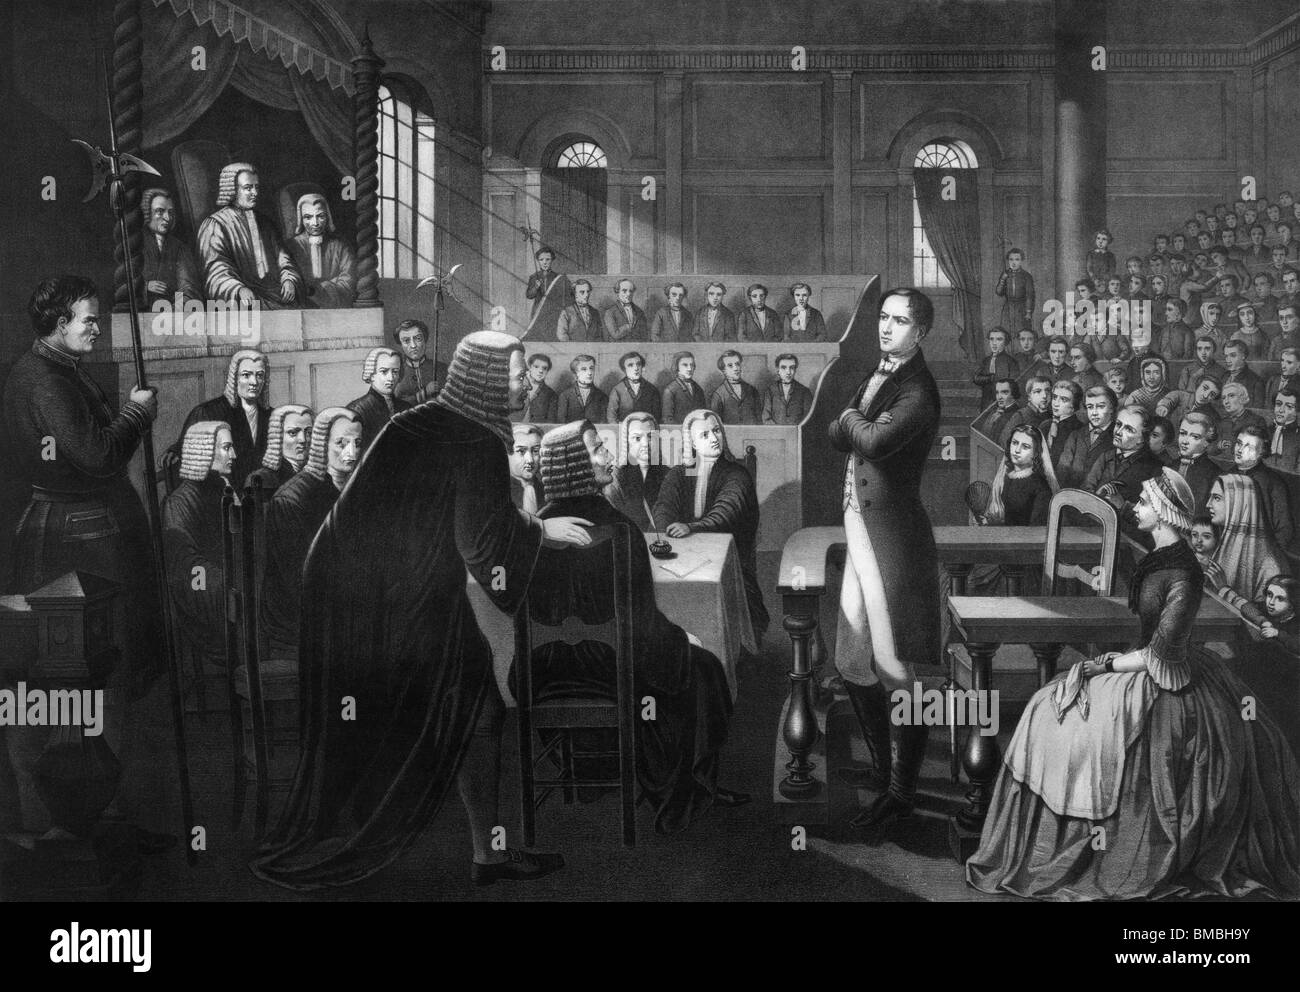 Vintage print depicting trial of Irish nationalist Robert Emmet (1778 - 1803) - leader of 1803 rebellion against - Stock Image